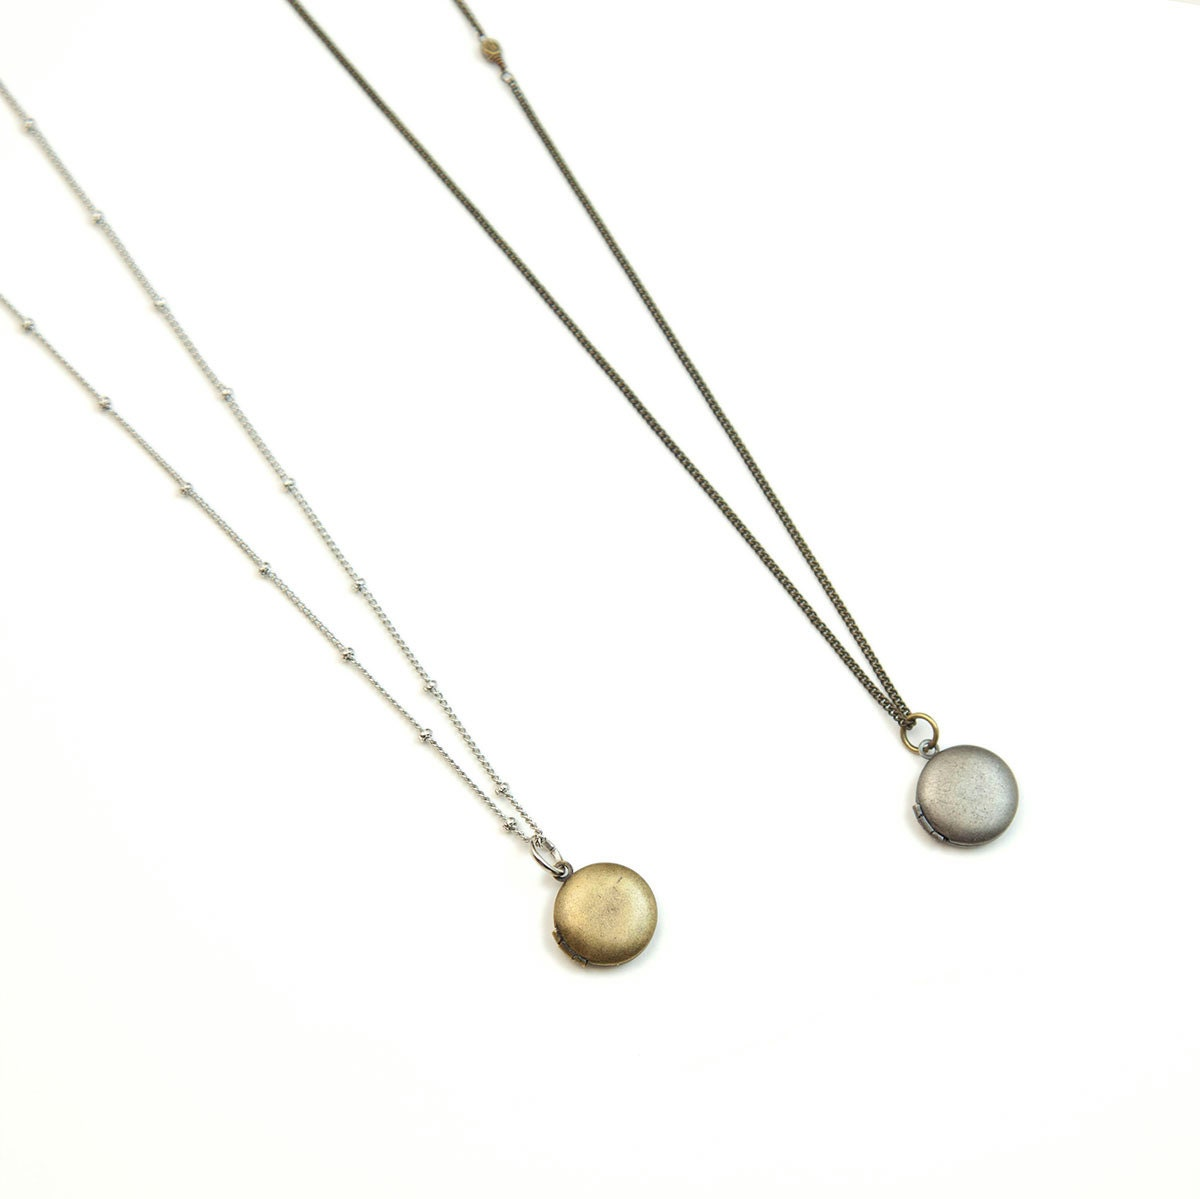 samuel h jewellery webstore necklaces pendants simple style category l lockets